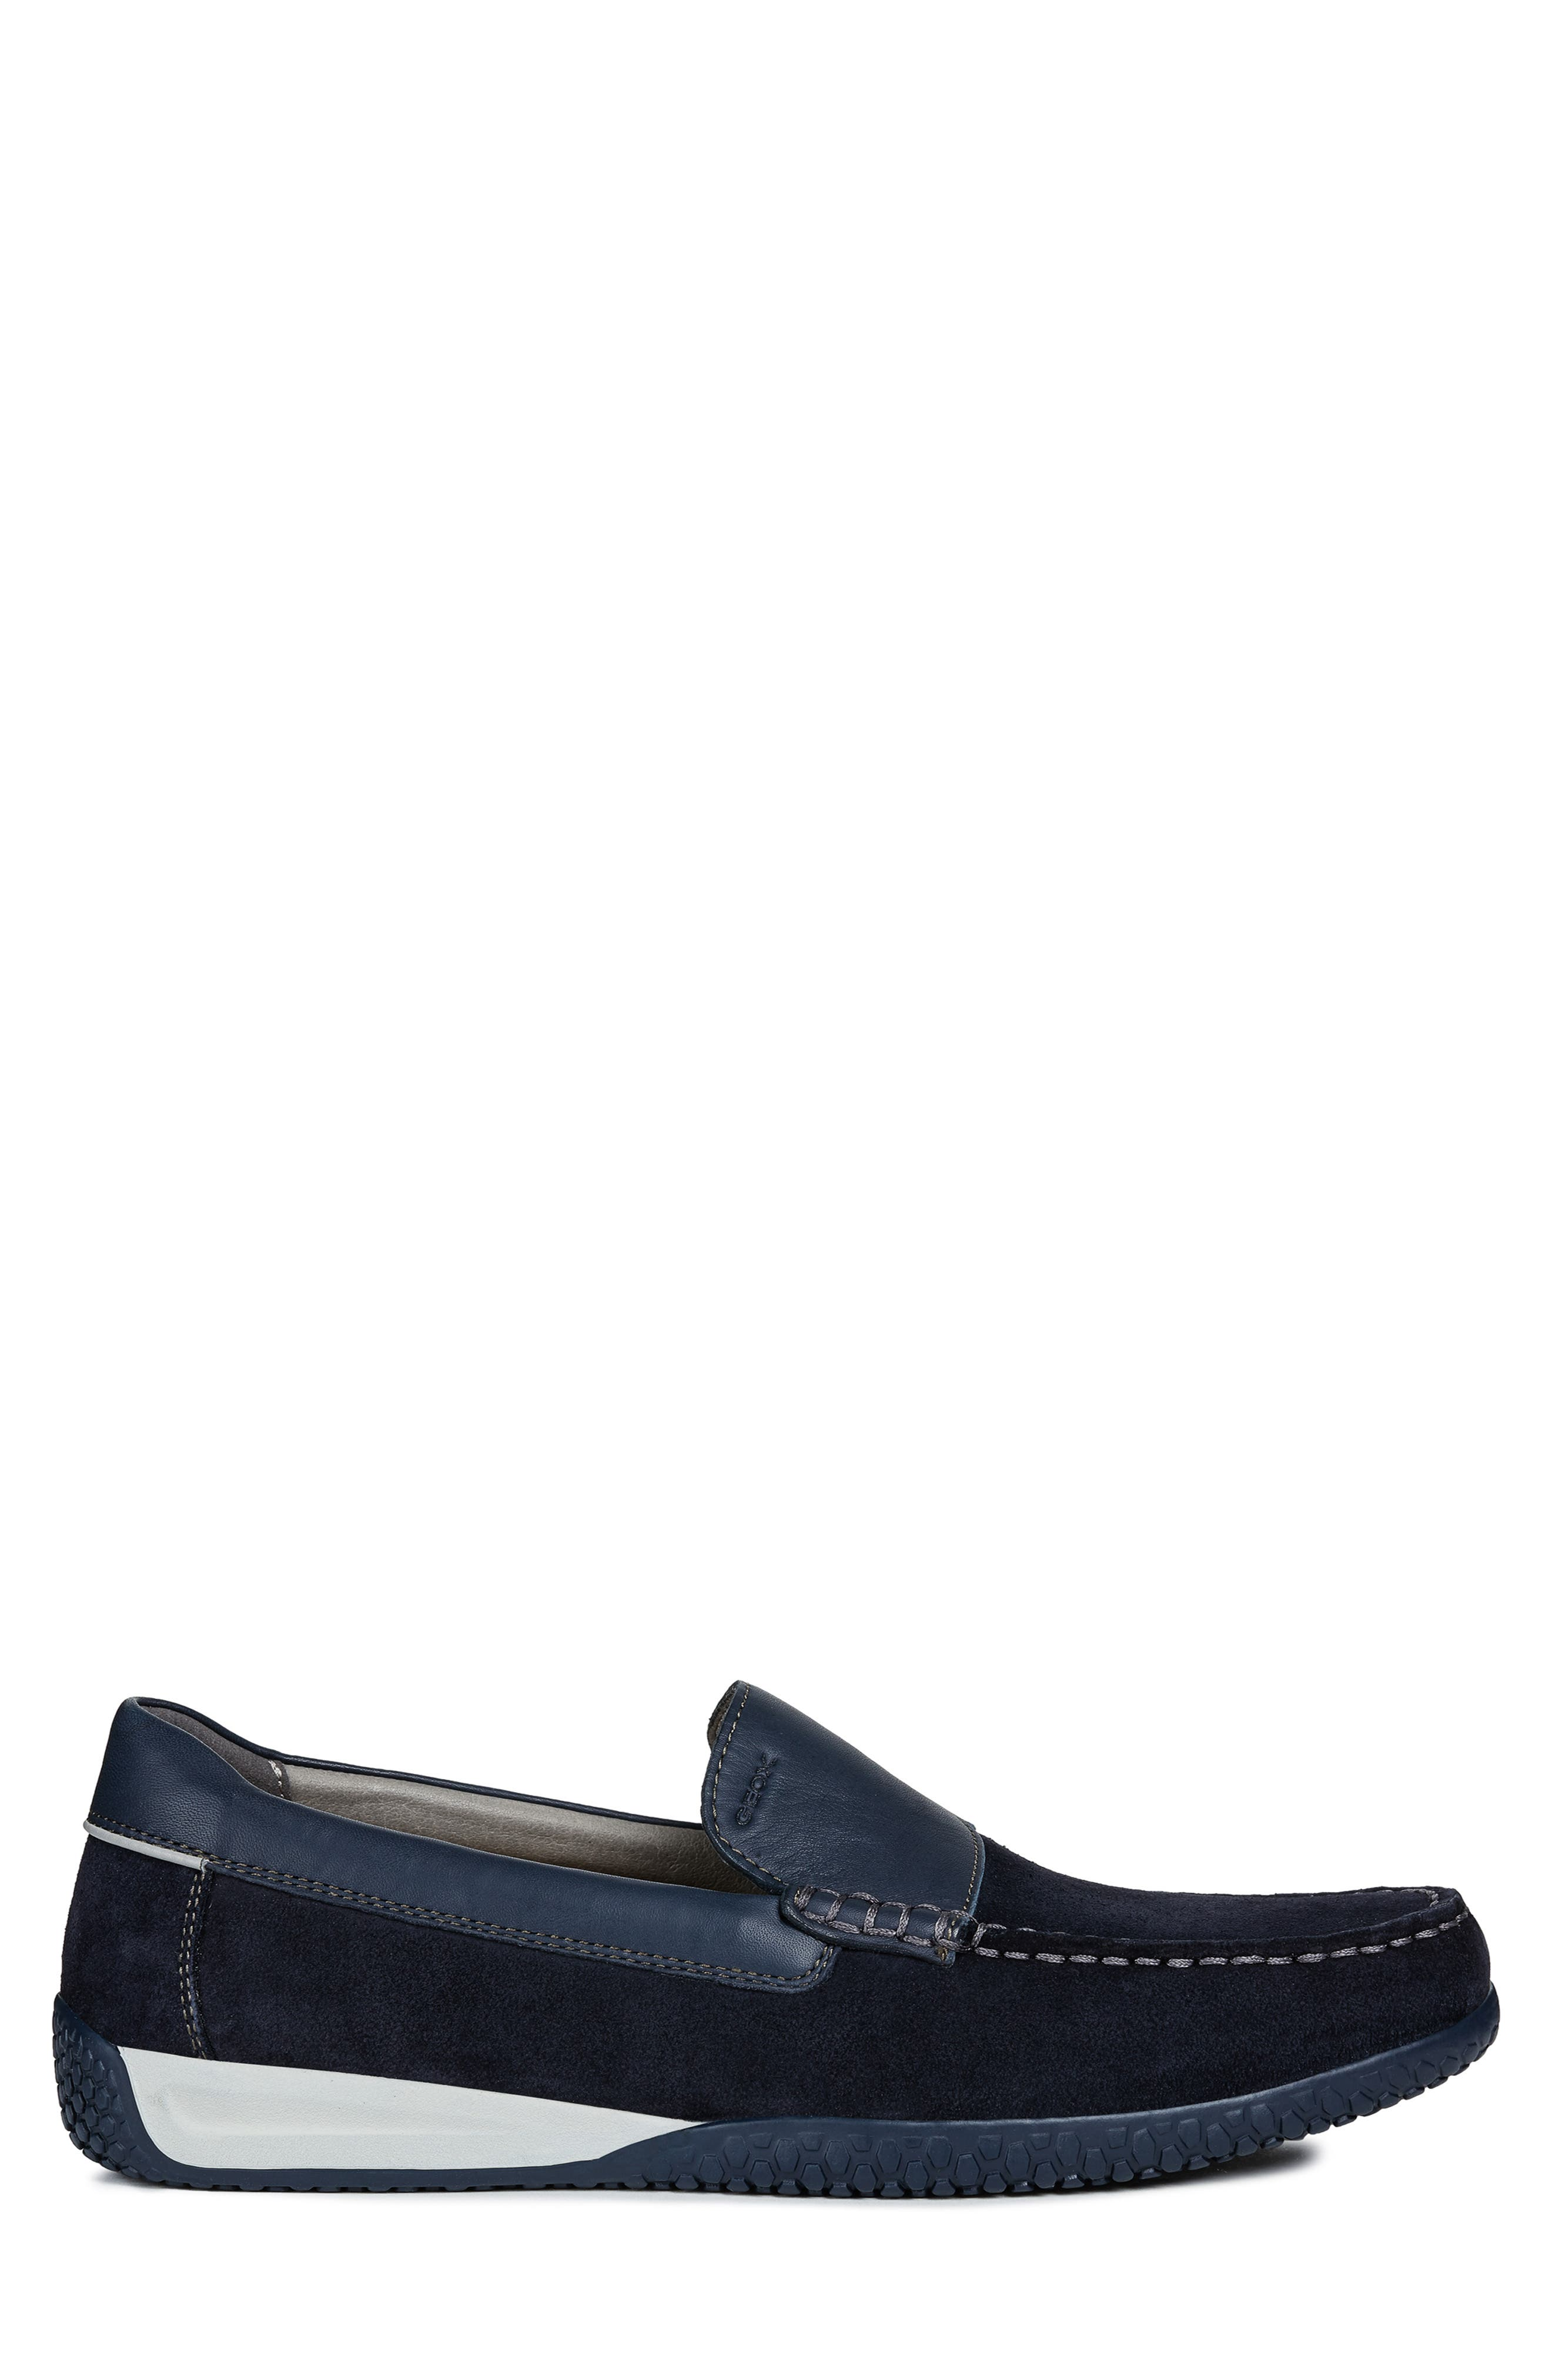 GEOX, Delrick 2 Slip-On, Alternate thumbnail 3, color, NAVY SUEDE/ LEATHER